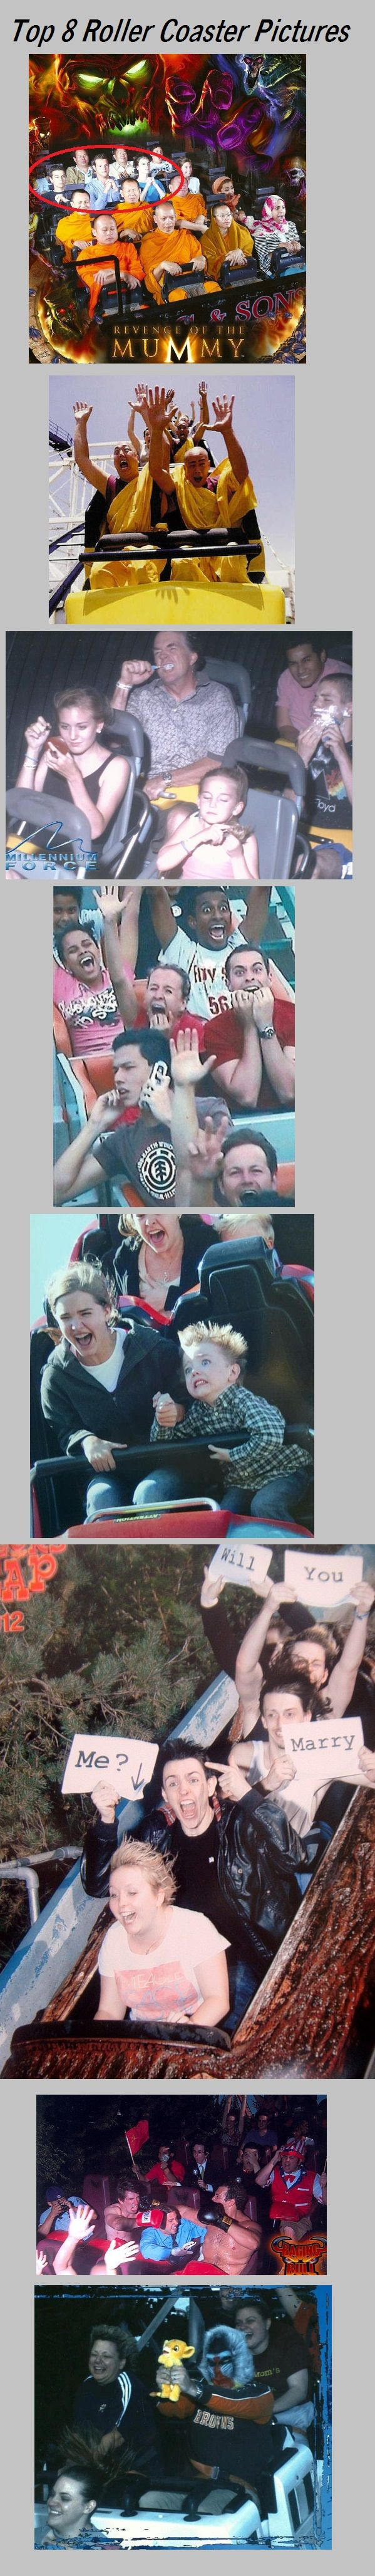 Oh my gosh the last one!!: Giggle, Lion King, Roller Coasters, Funny Rollercoaster Pictures, So Funny, Little Boys, Best Rollercoaster Pictures, Coaster Pics